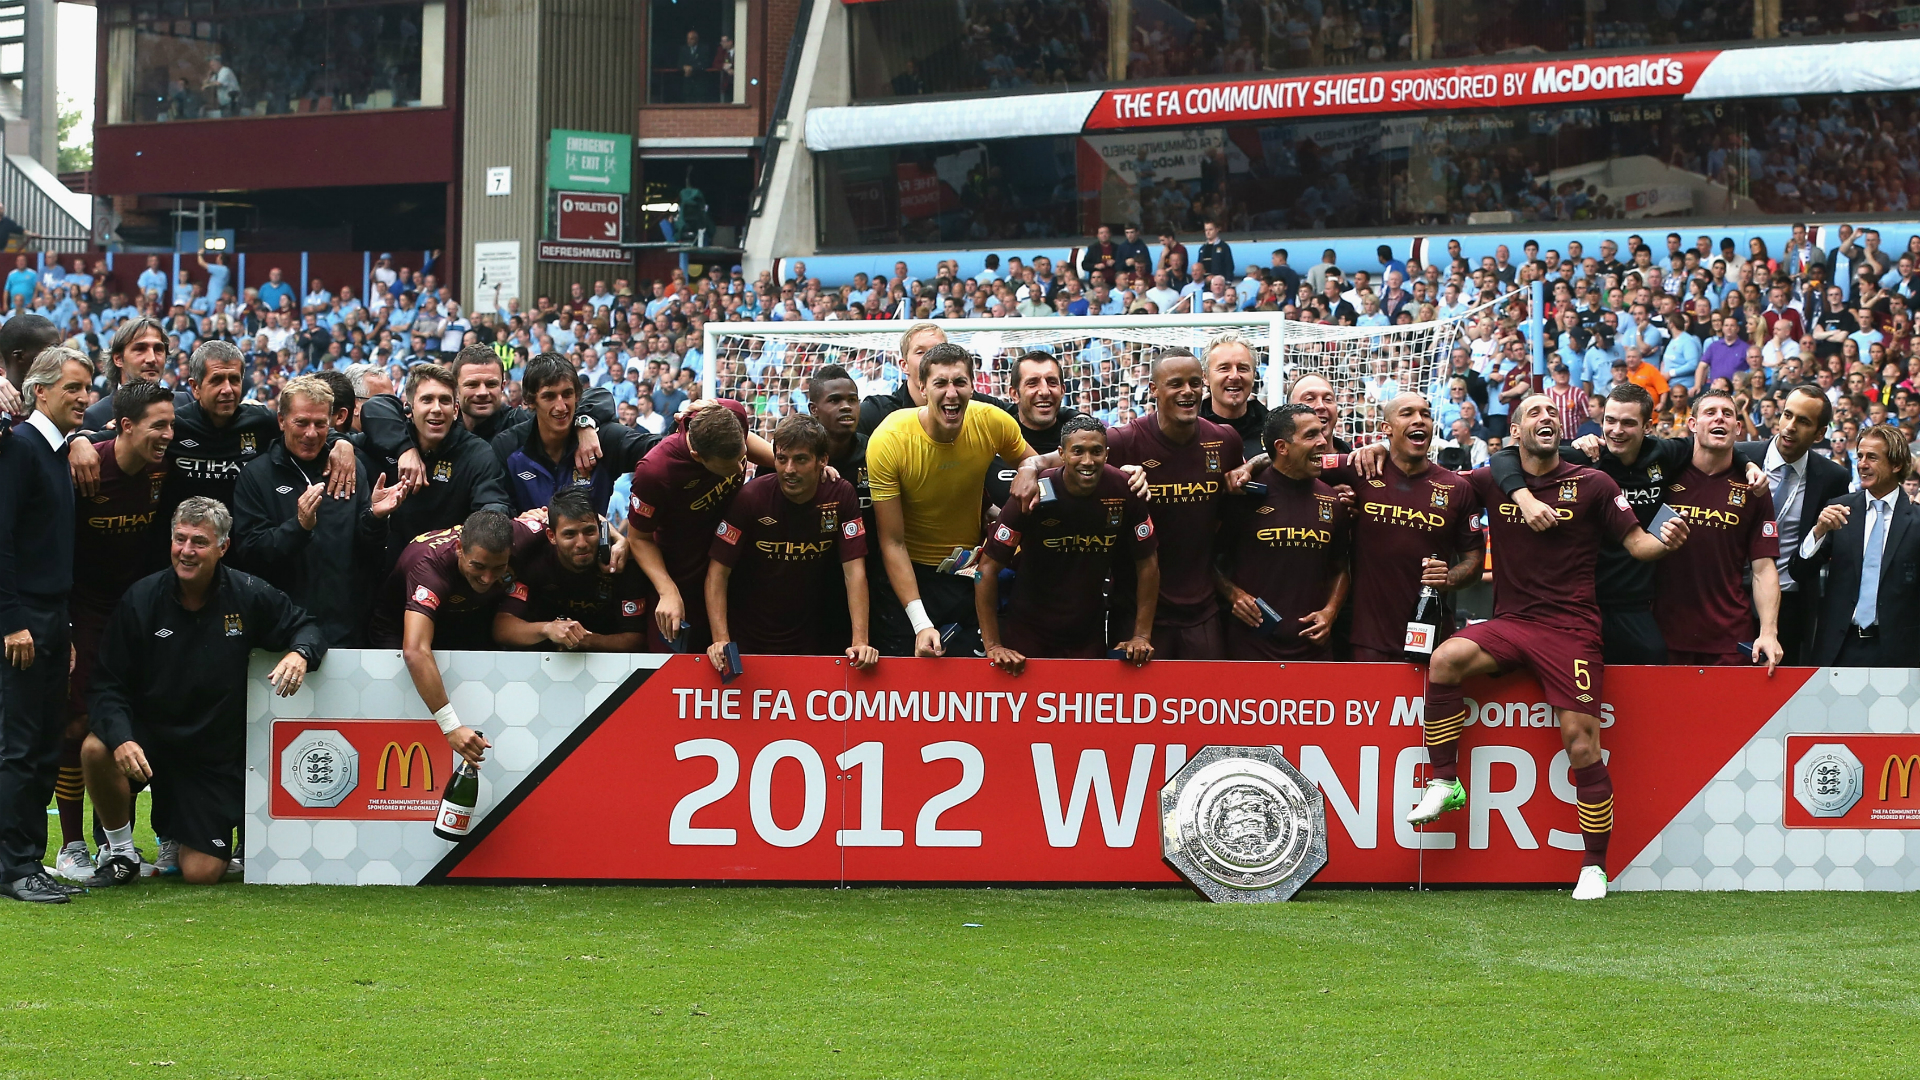 Manchester City Community Shield 2012